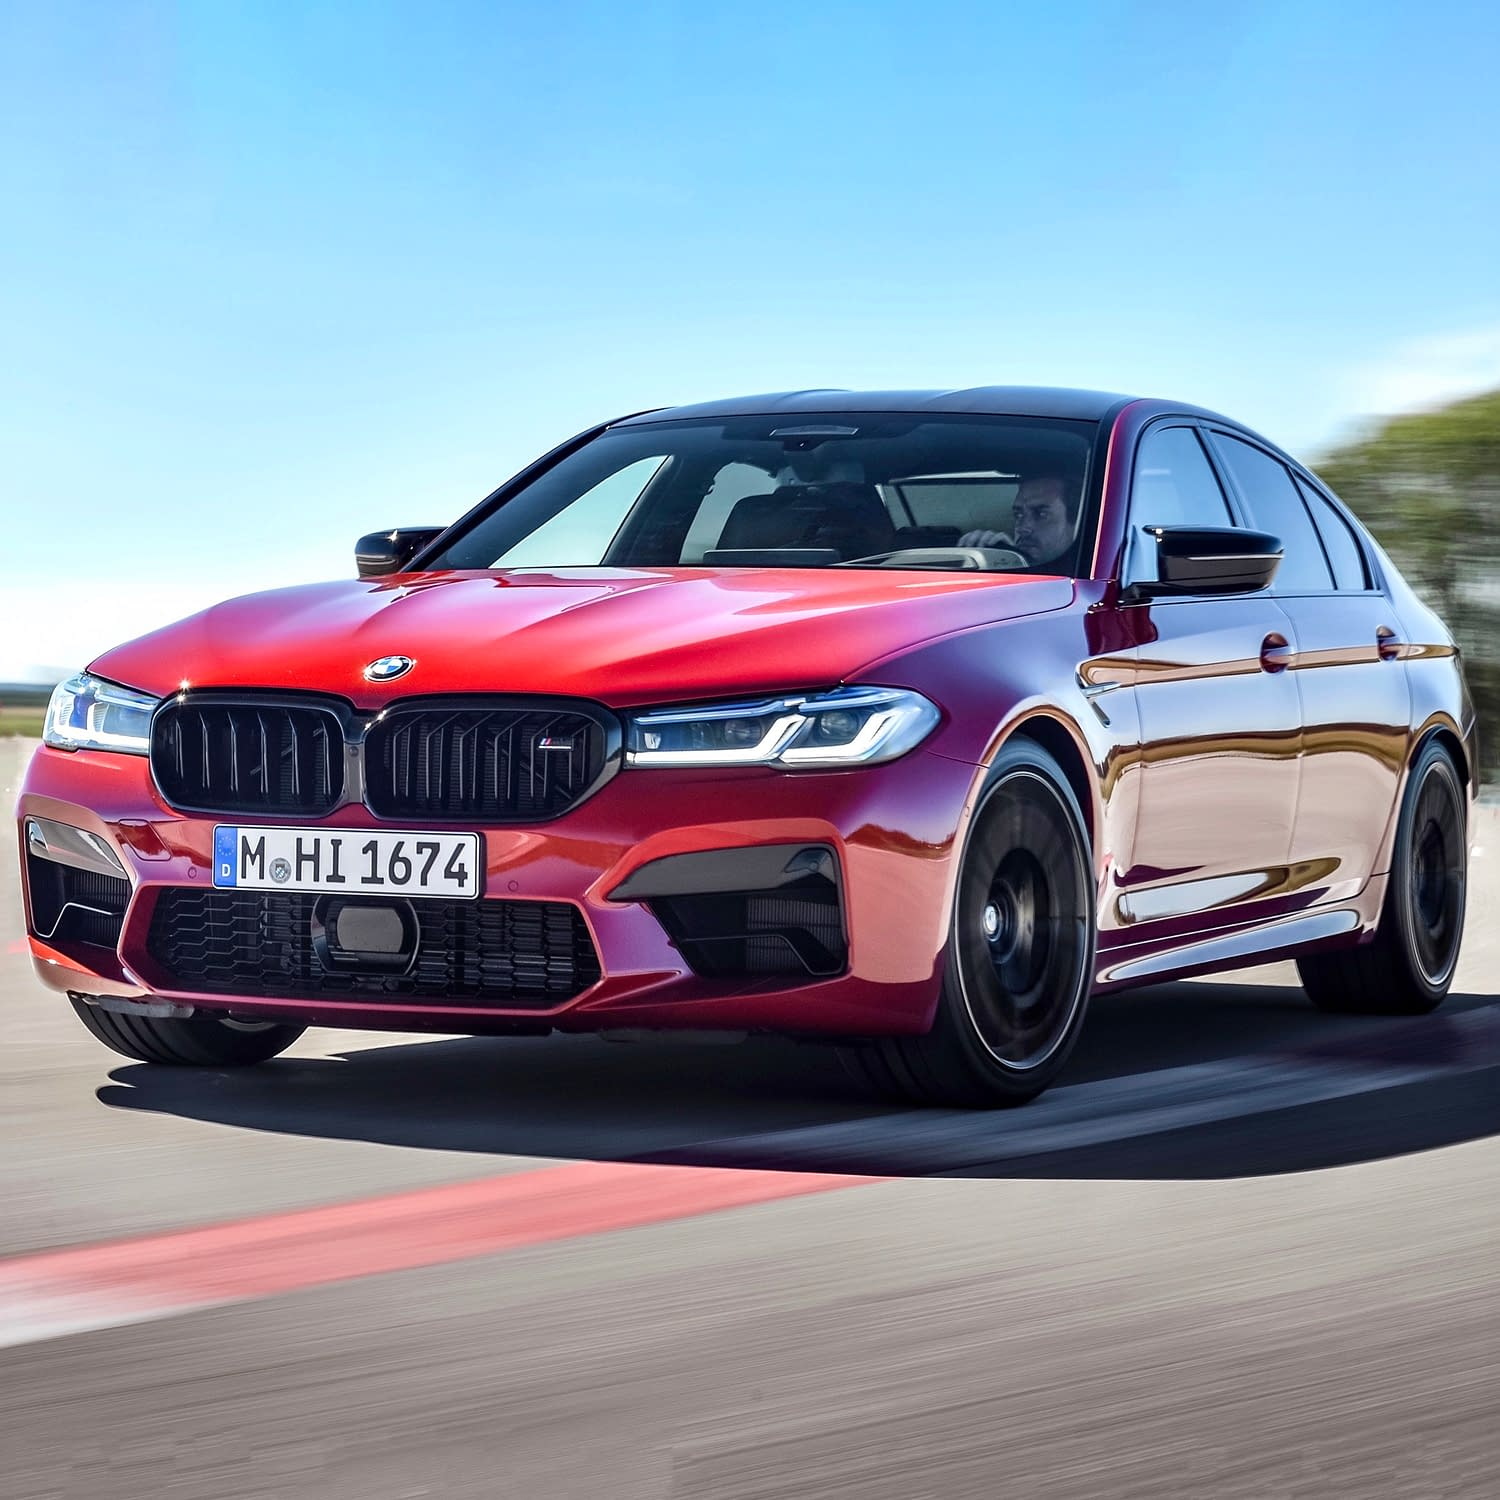 2021 bmw m5 competition revealed - here's what's new